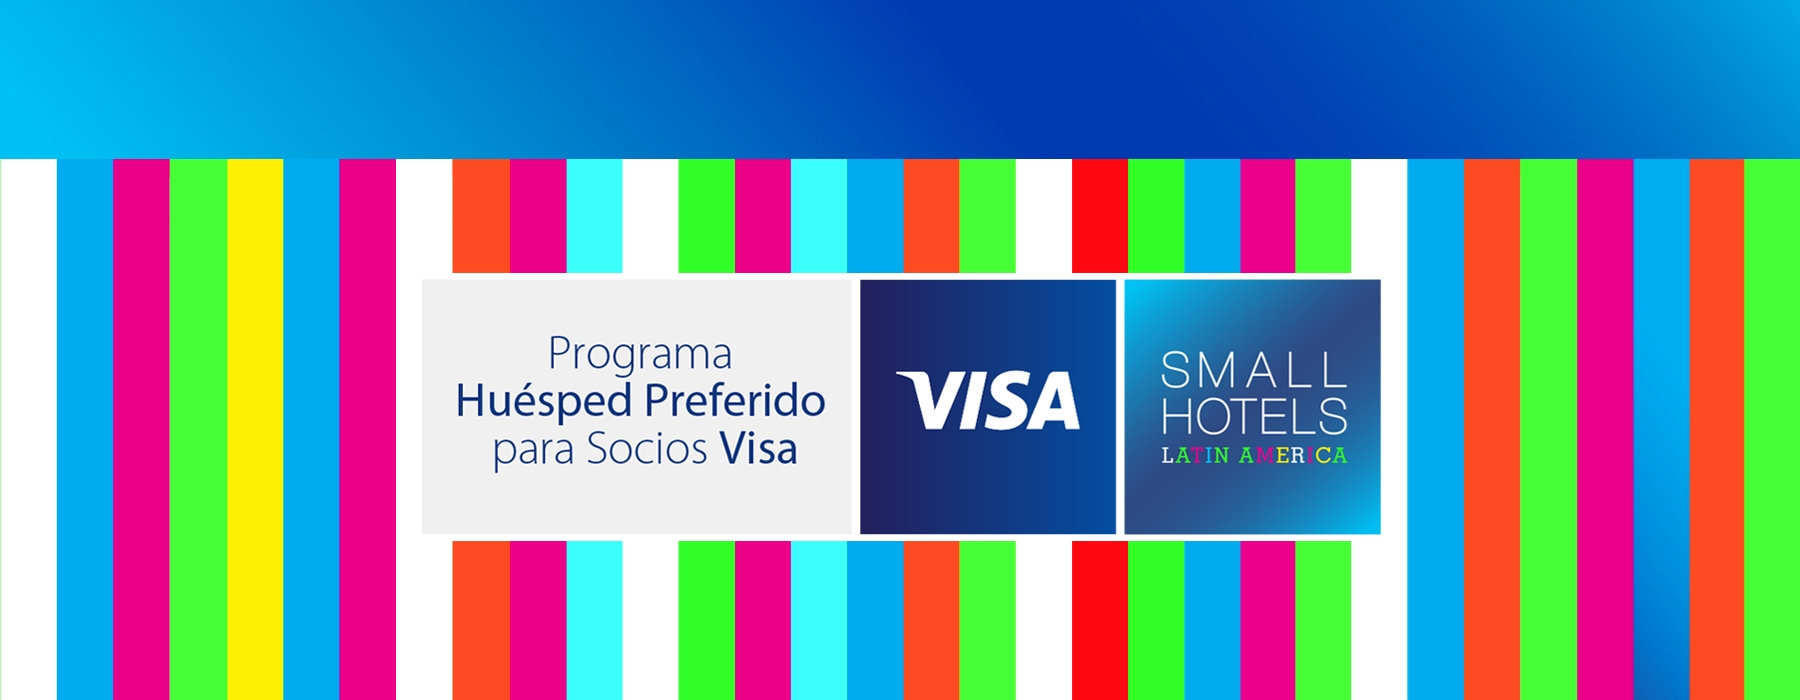 SMALL HOTELS LATAM